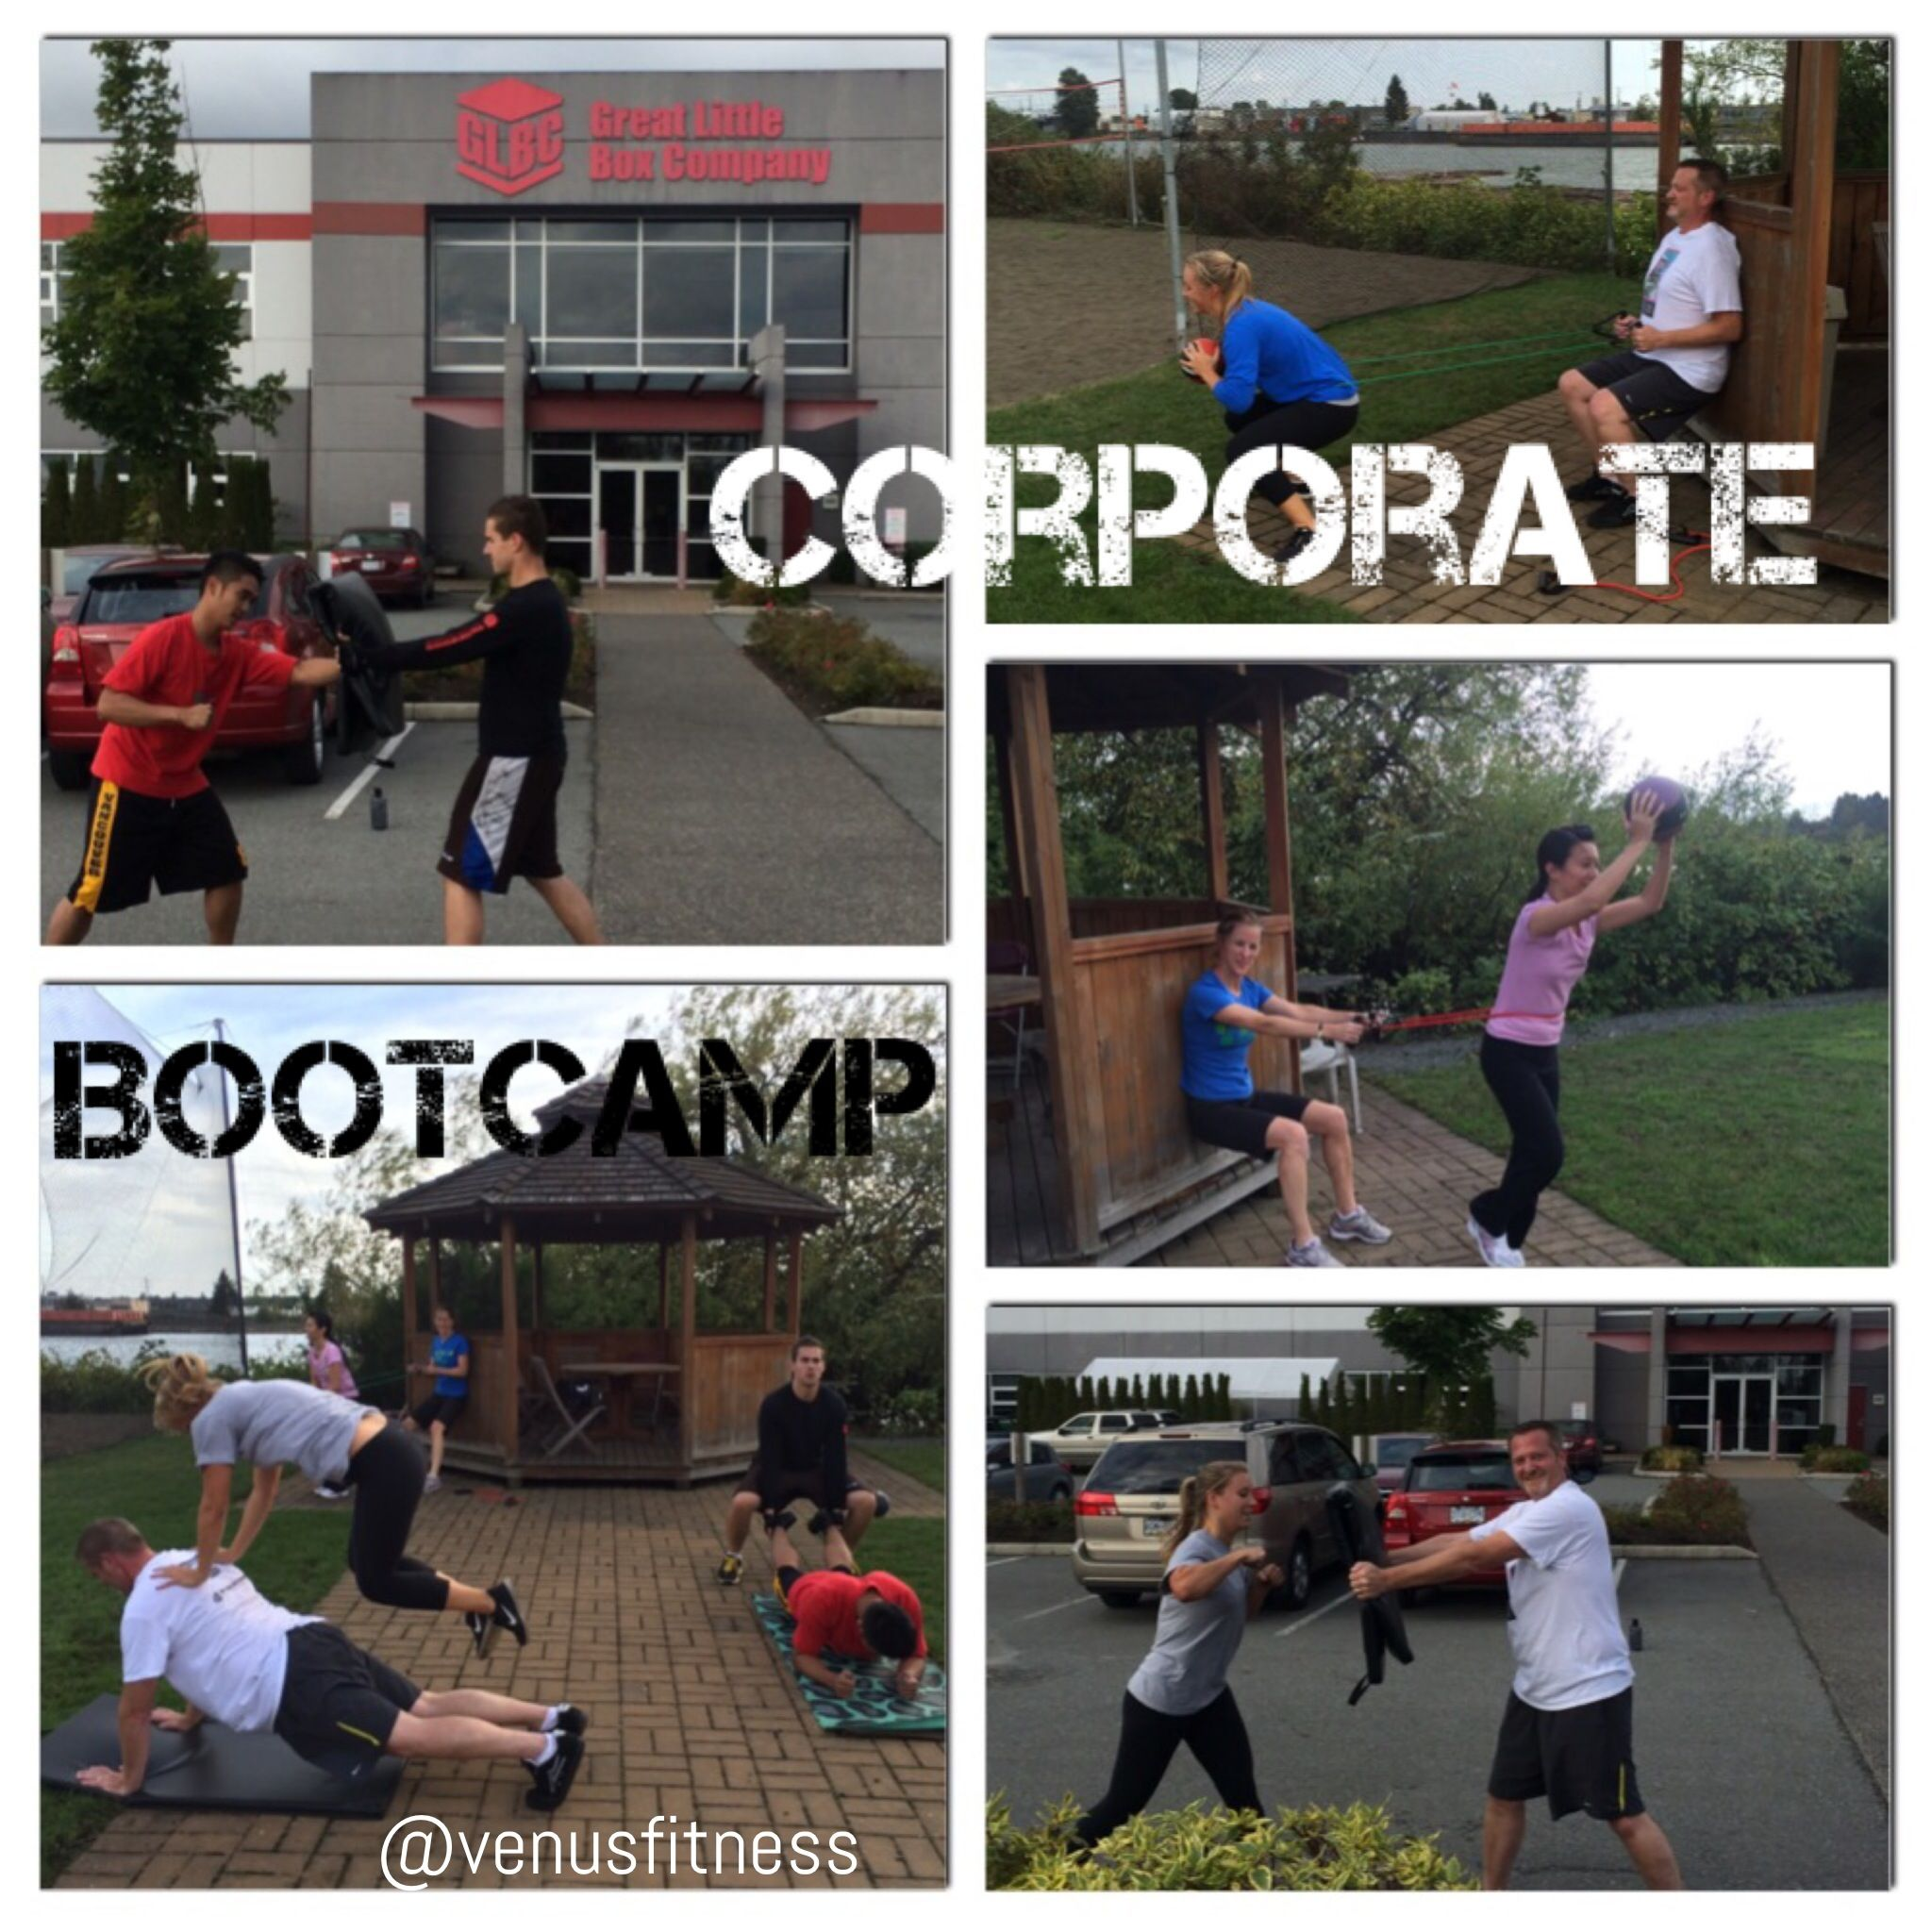 Pin By Venus Fitness Lifestyle On Corporate Bootcamp Vf Fitness Bootcamp Venus